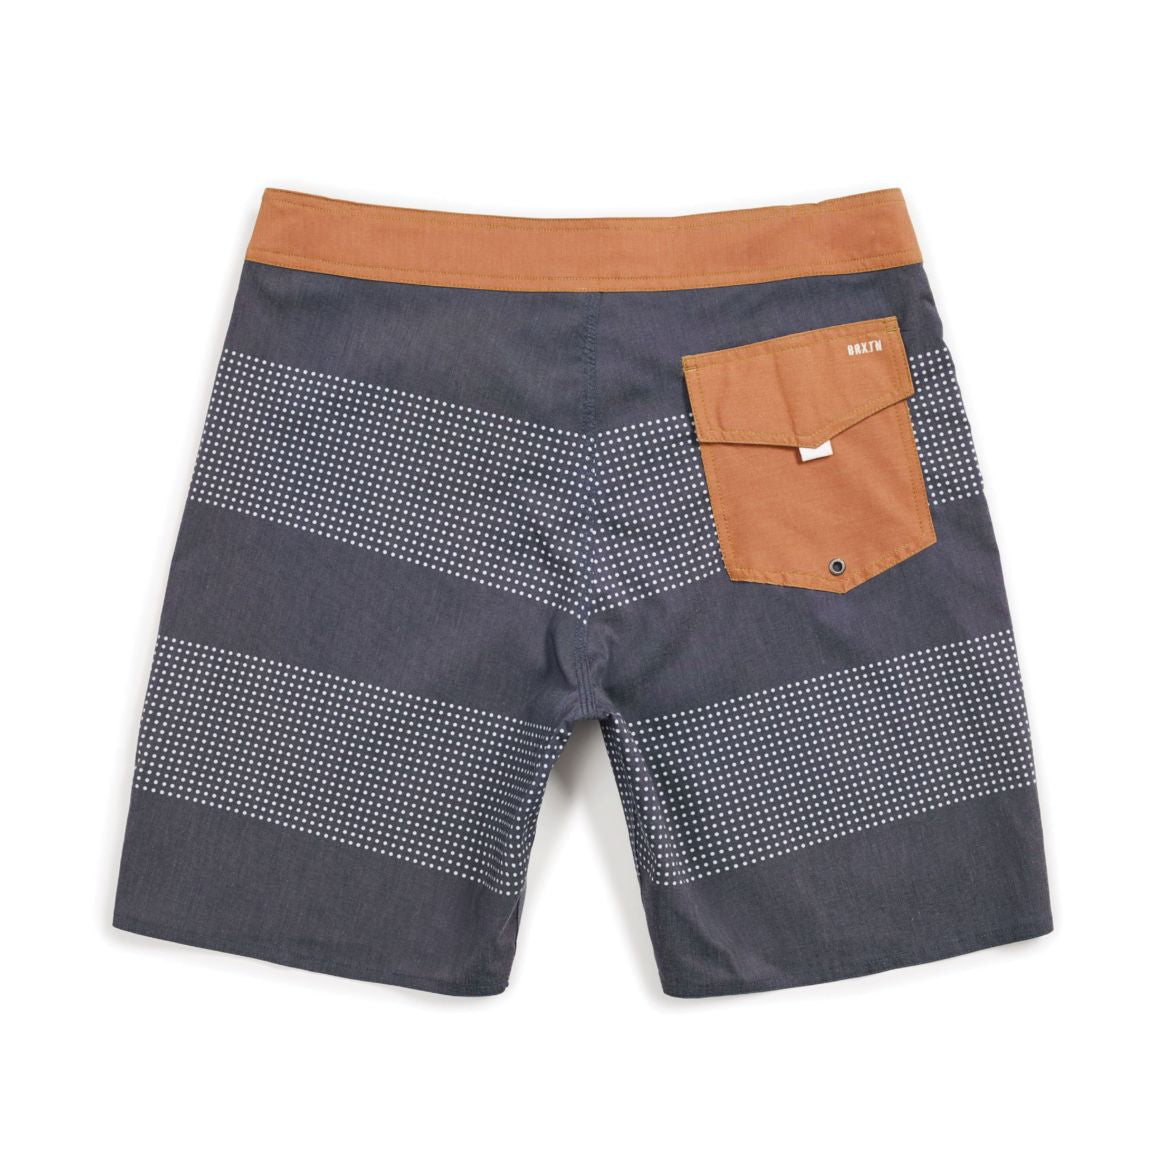 Brixton Barge Stripe Boardshorts - 88 Gear